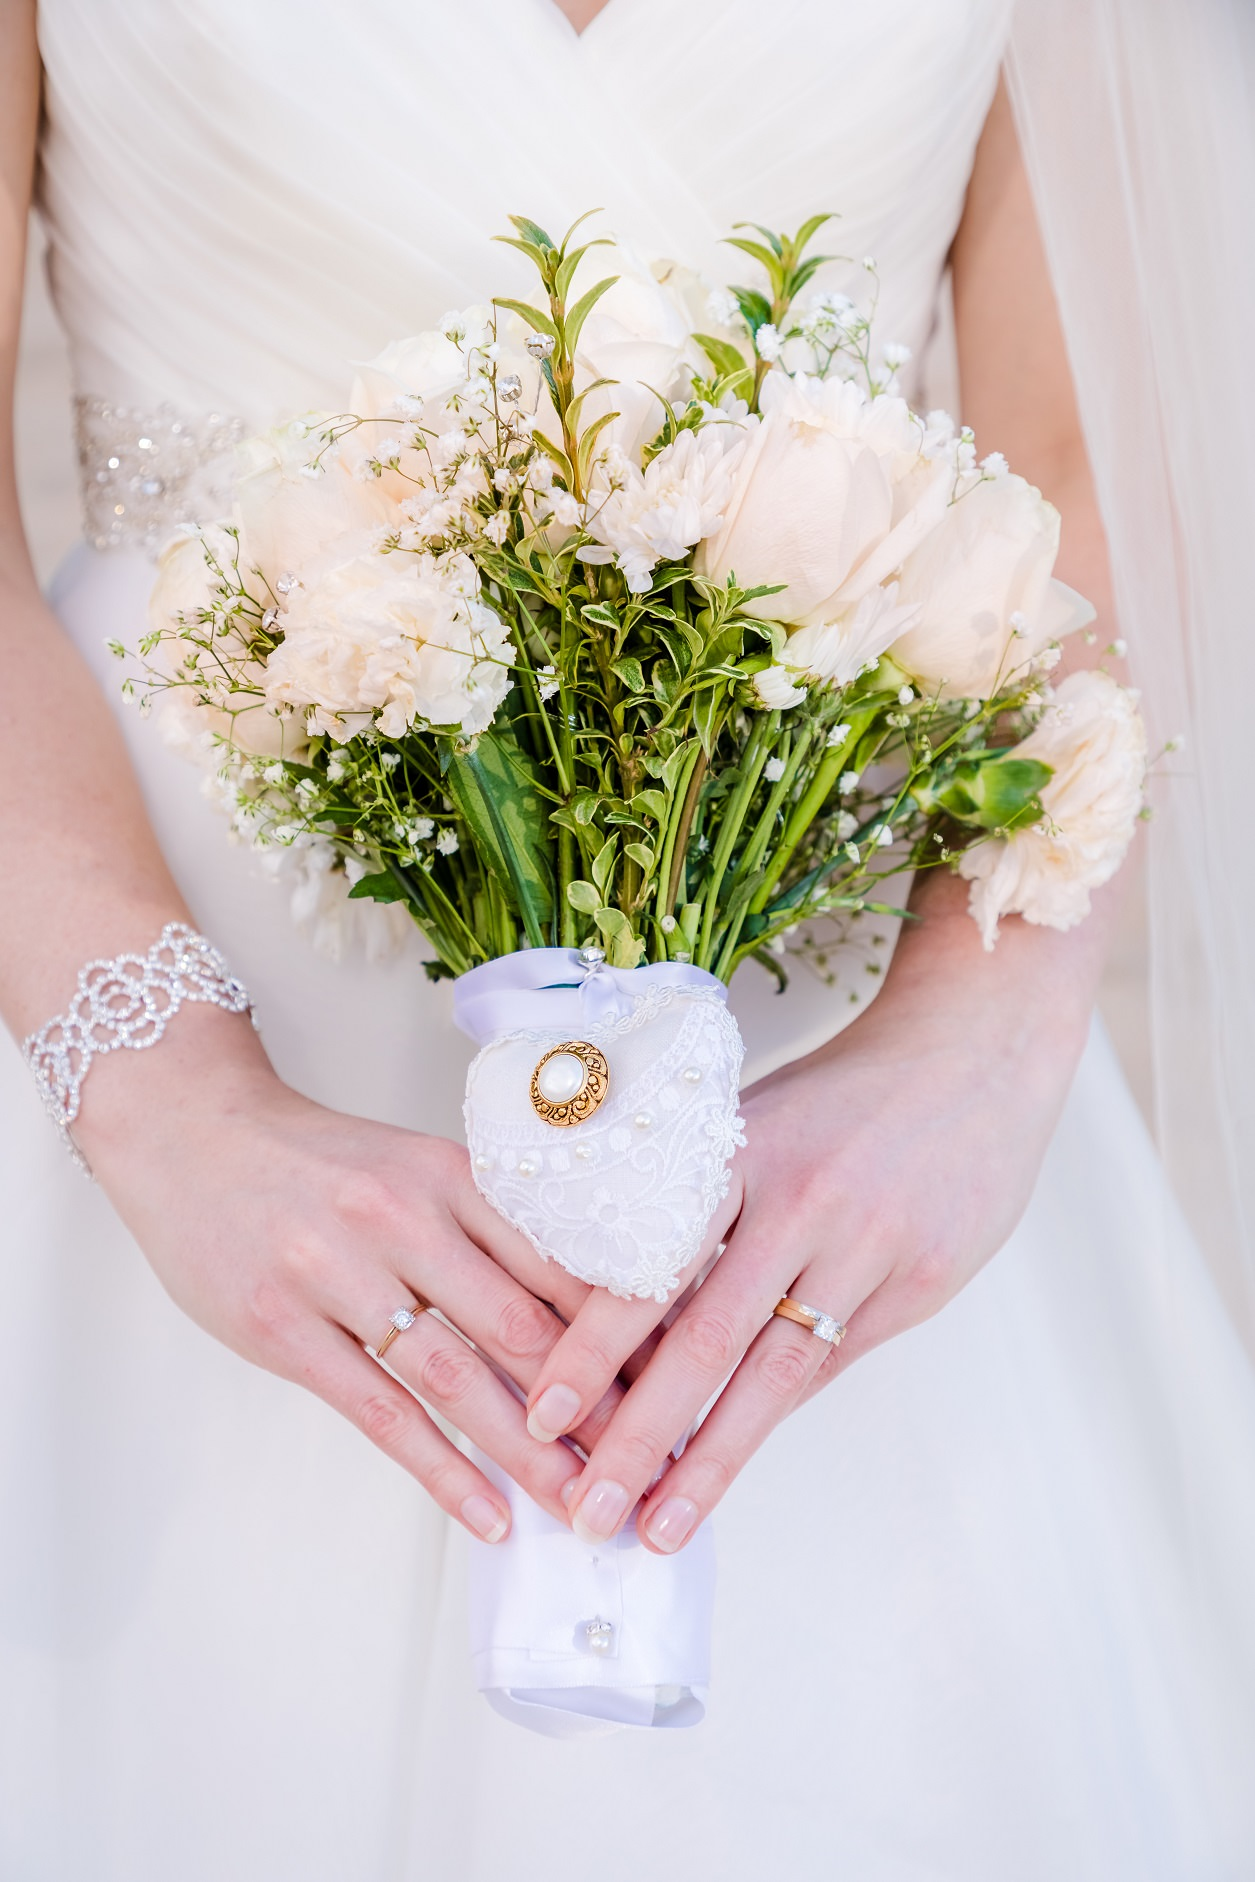 brides wedding flower bouquet with grandmothers wedding ring